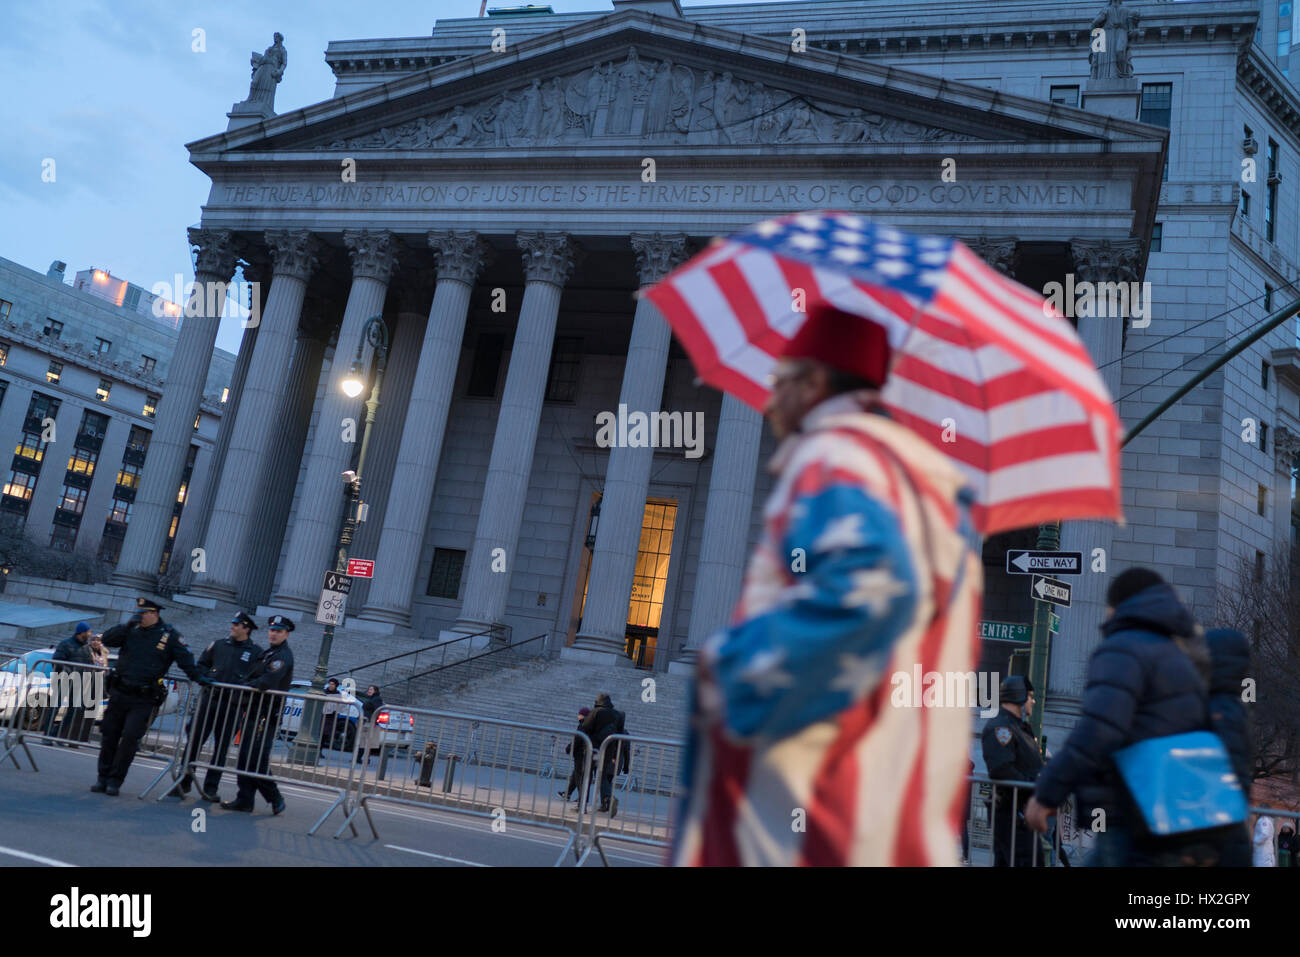 Police look on from the barricaded steps of the New York Sate Supreme Court building. A protester dressed as a American - Stock Image